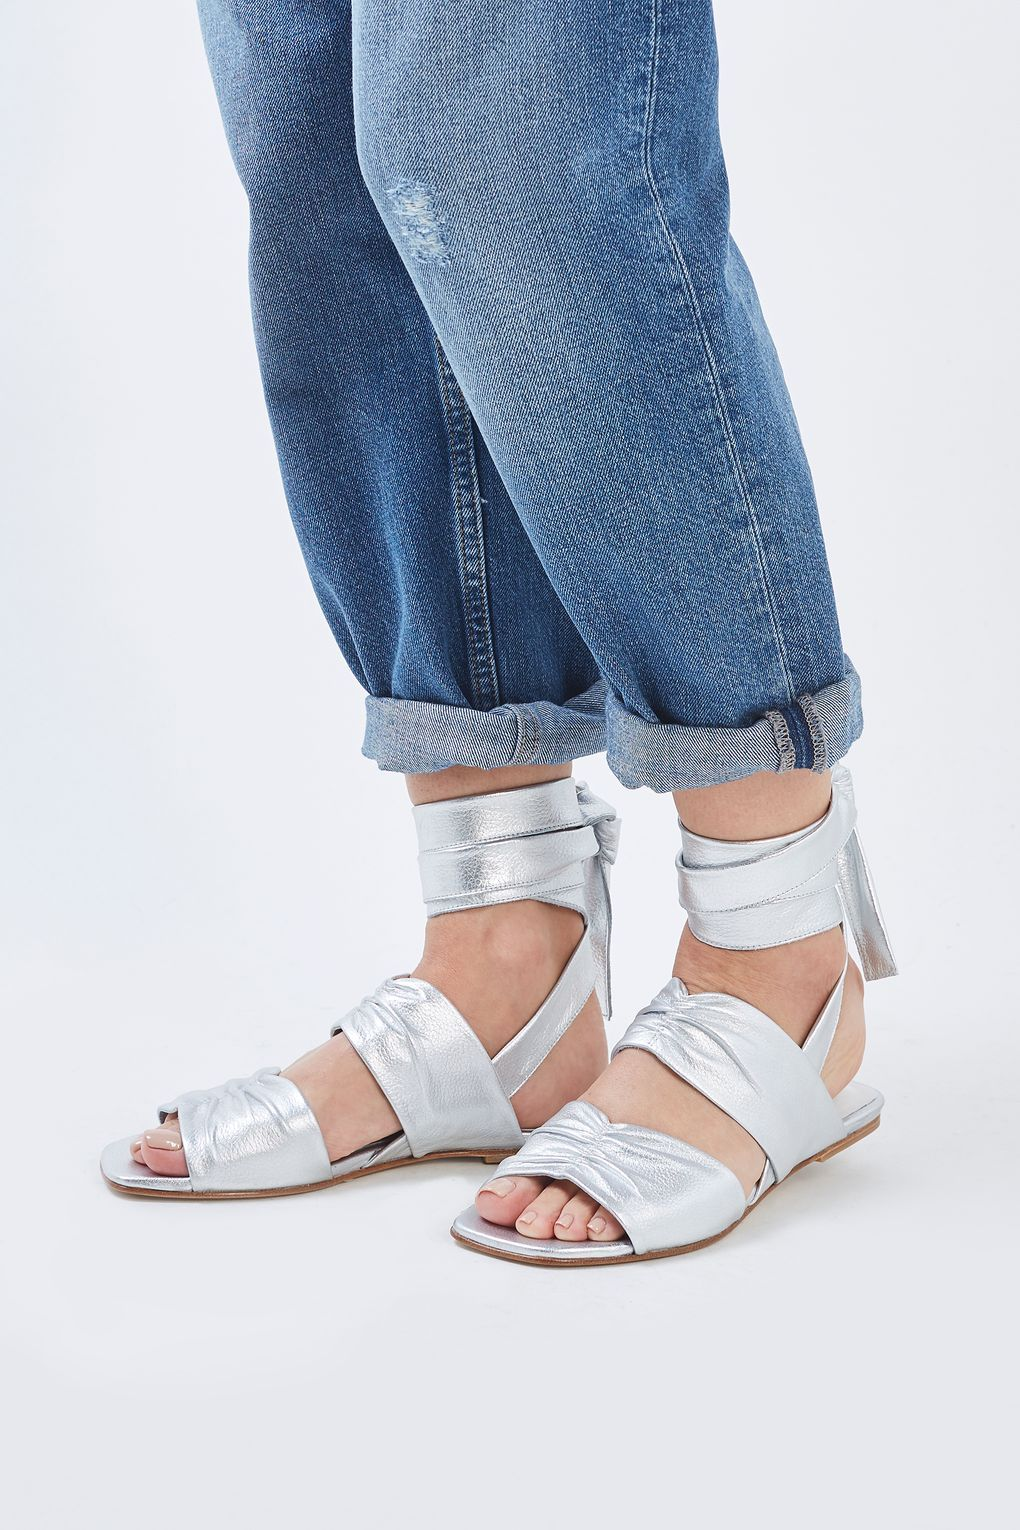 Tie Flat Sandals by Molly Goddard x Topshop